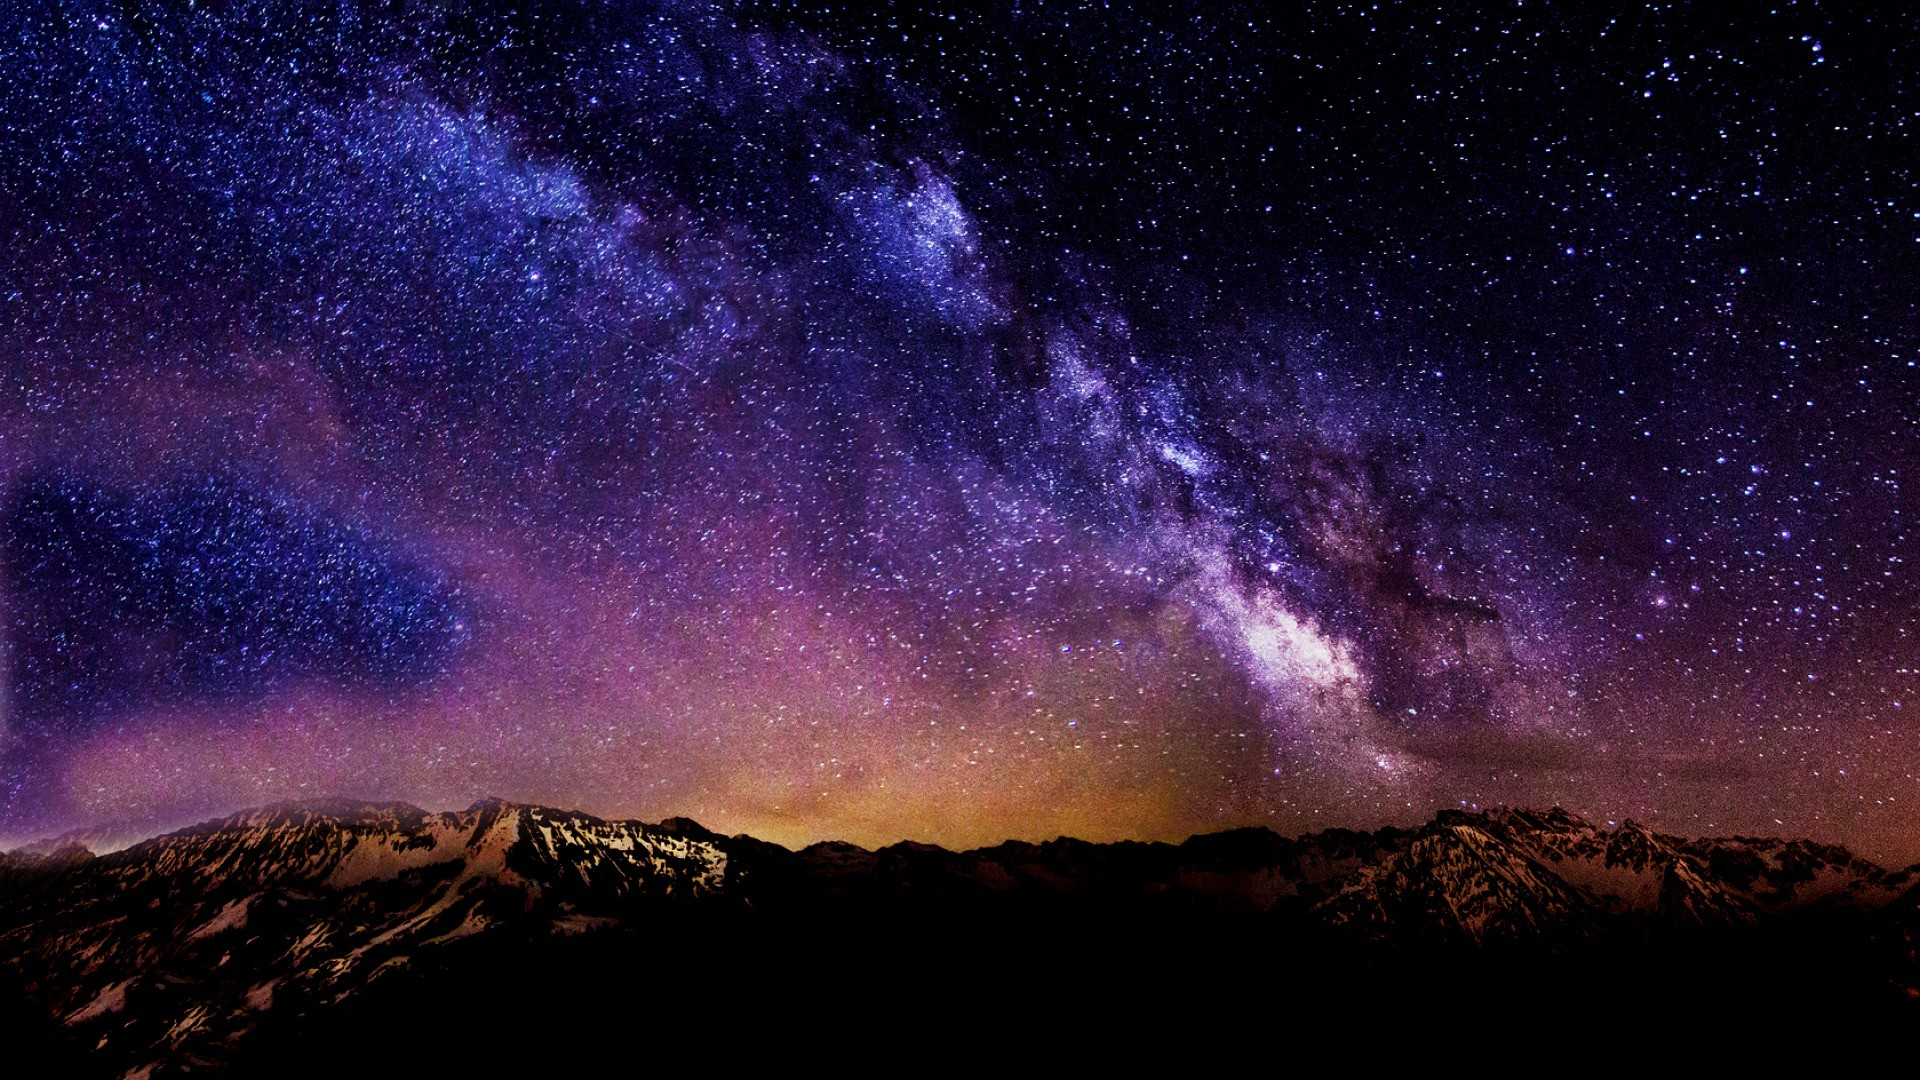 1920x1080 Starry Night. Amazing Starry Night Hd Desktop Background Wallpapers Free  1920x1200px